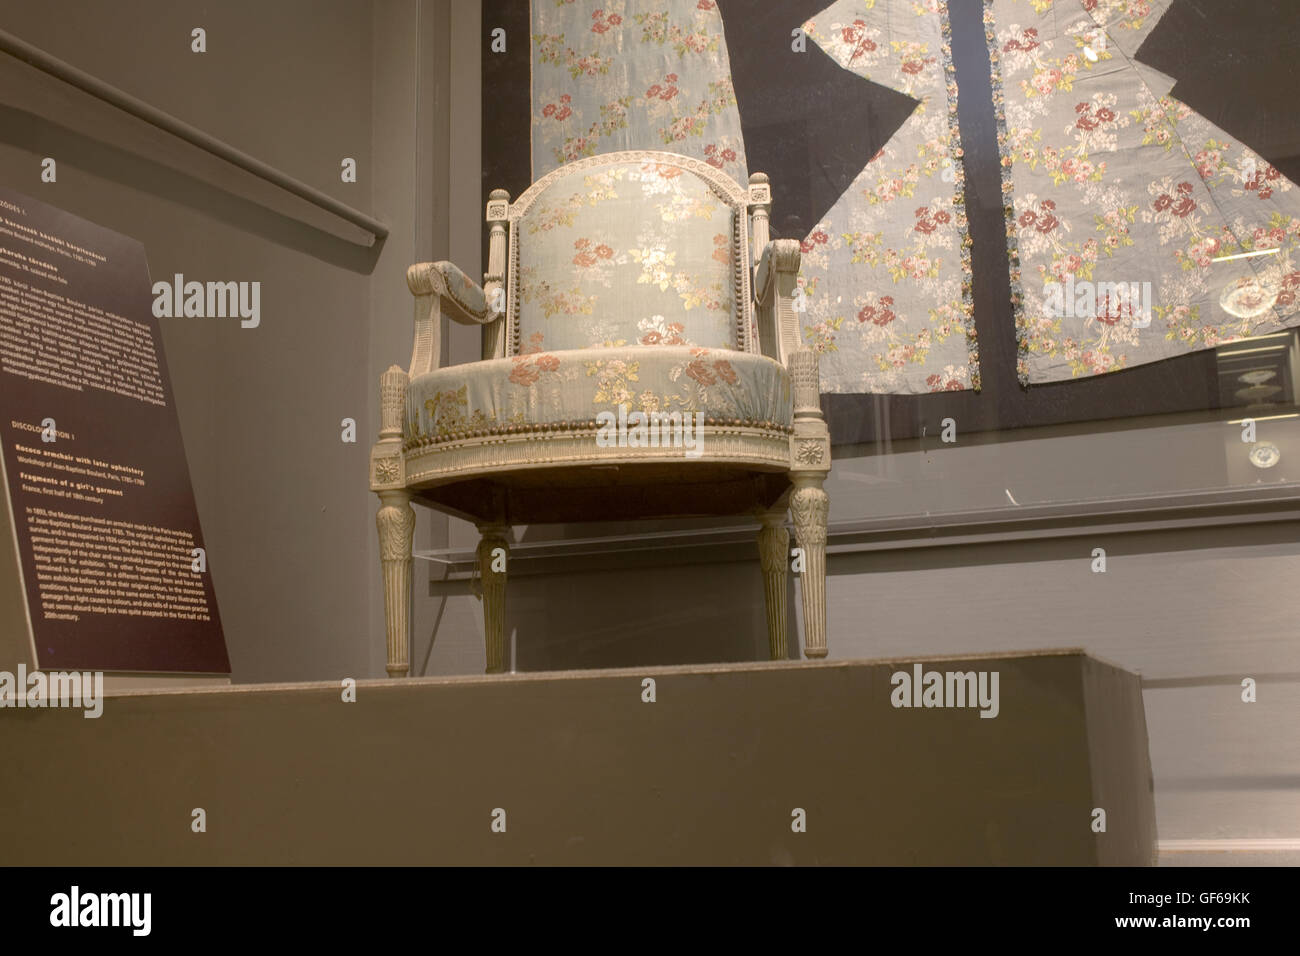 French armchair repaired with girl's dress in Musuem of Applied Arts - Stock Image